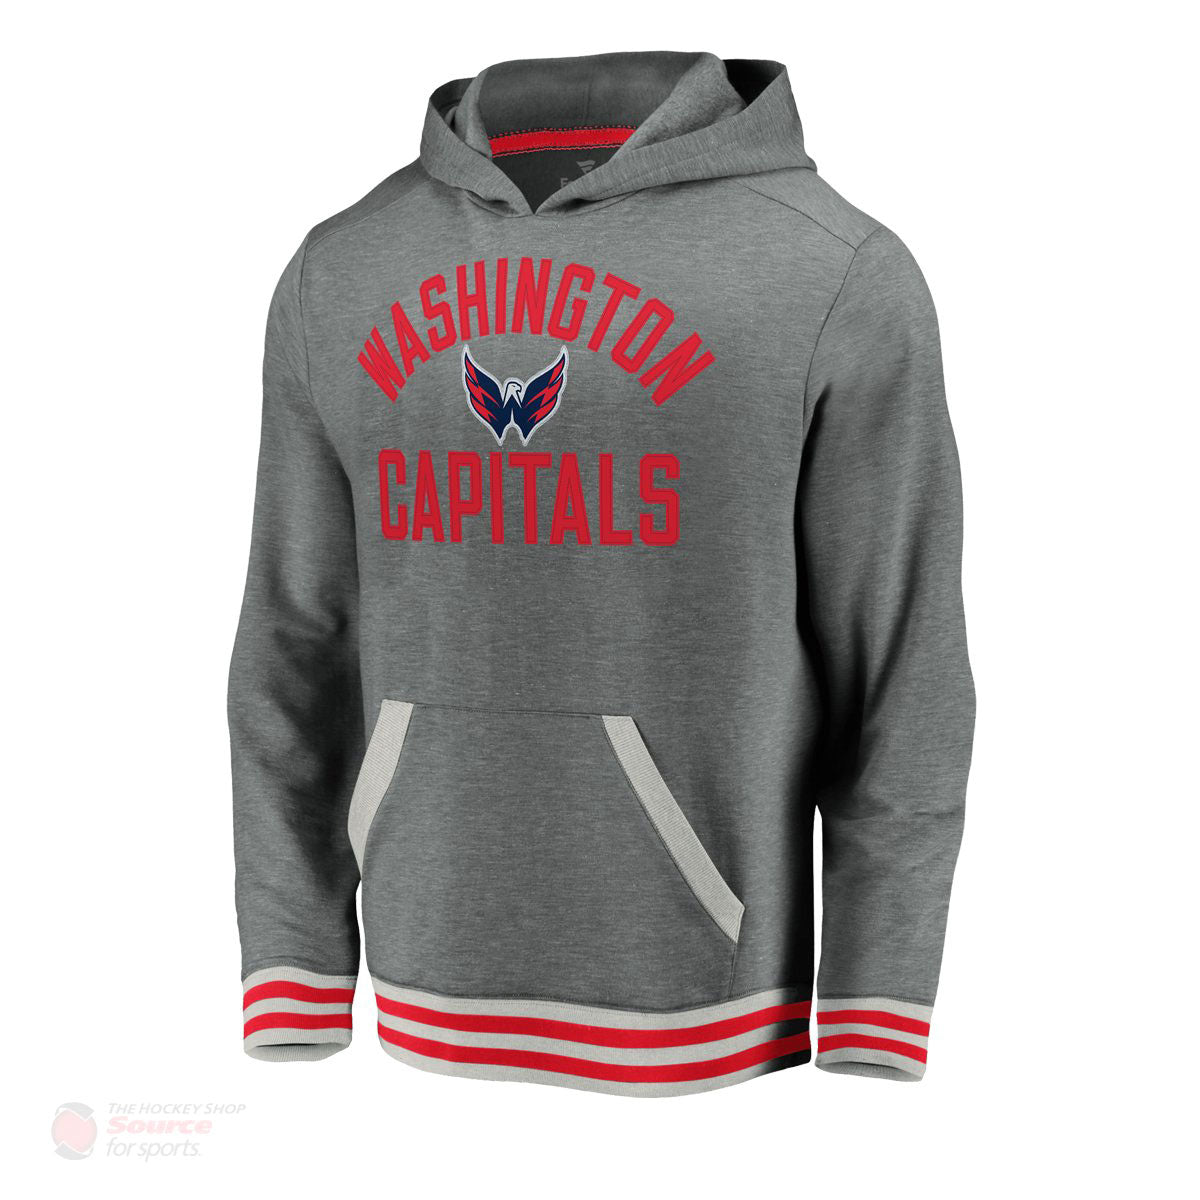 Washington Capitals Fanatics Upperclassmen Vintage Pullover Mens Hoody